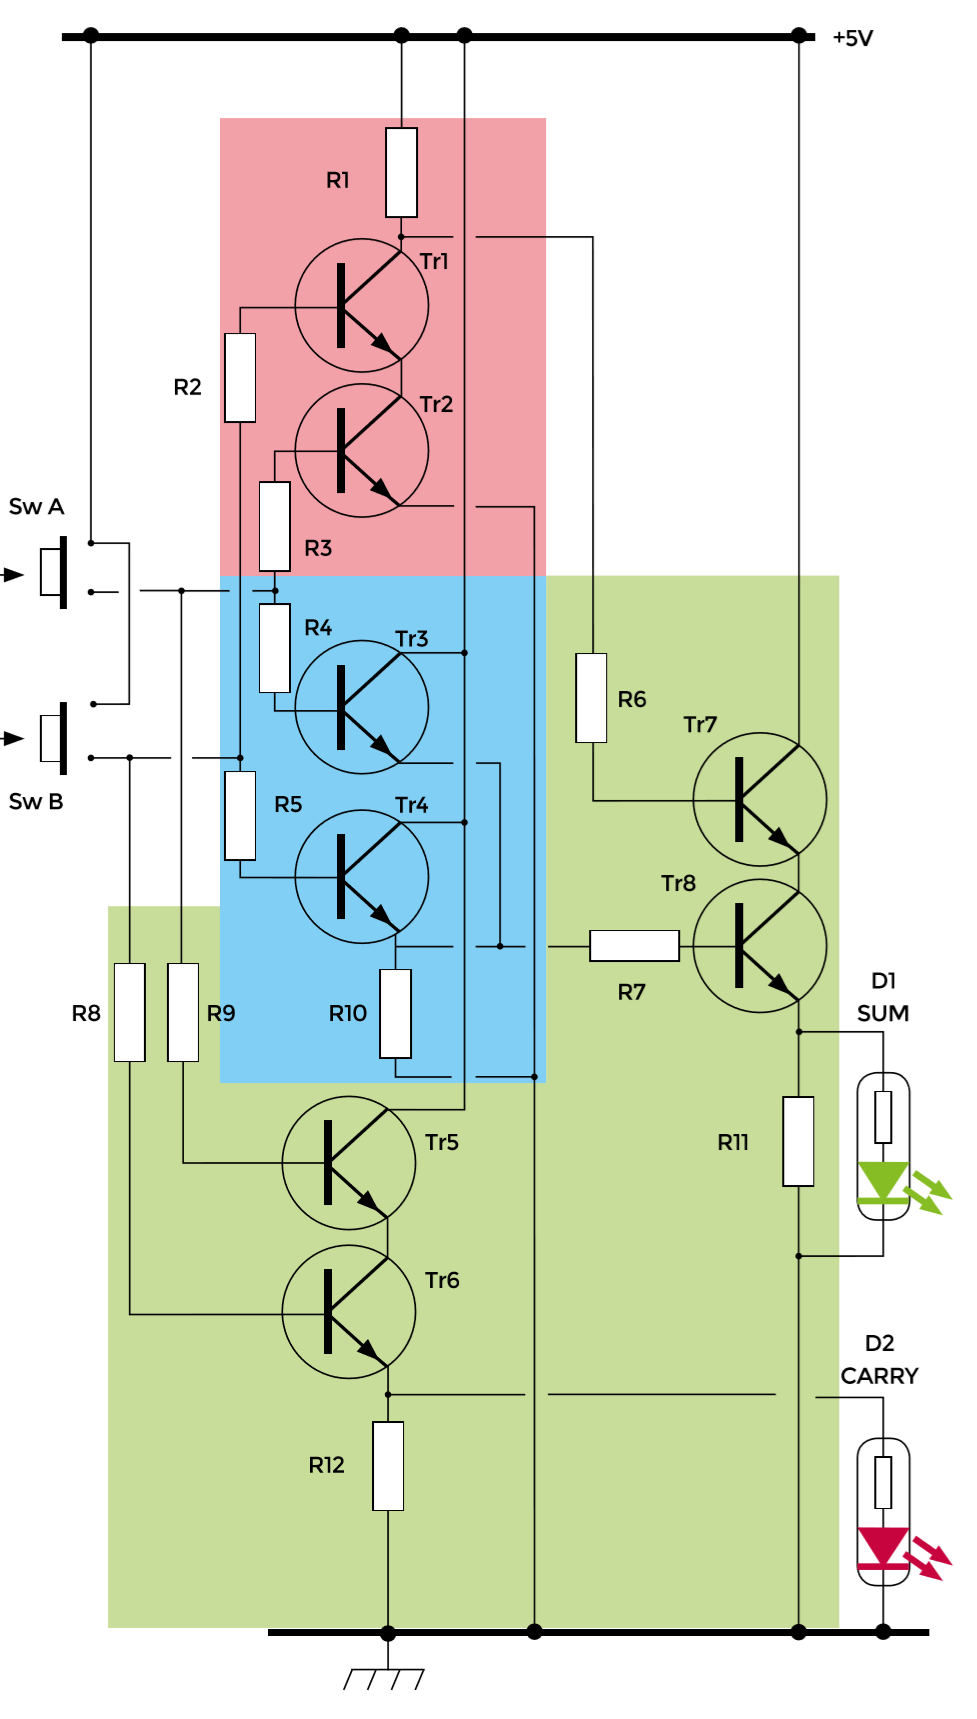 Building A Half Adder Bringing It Together Raspberry Pi Projects Logic Diagram All Final Circuit